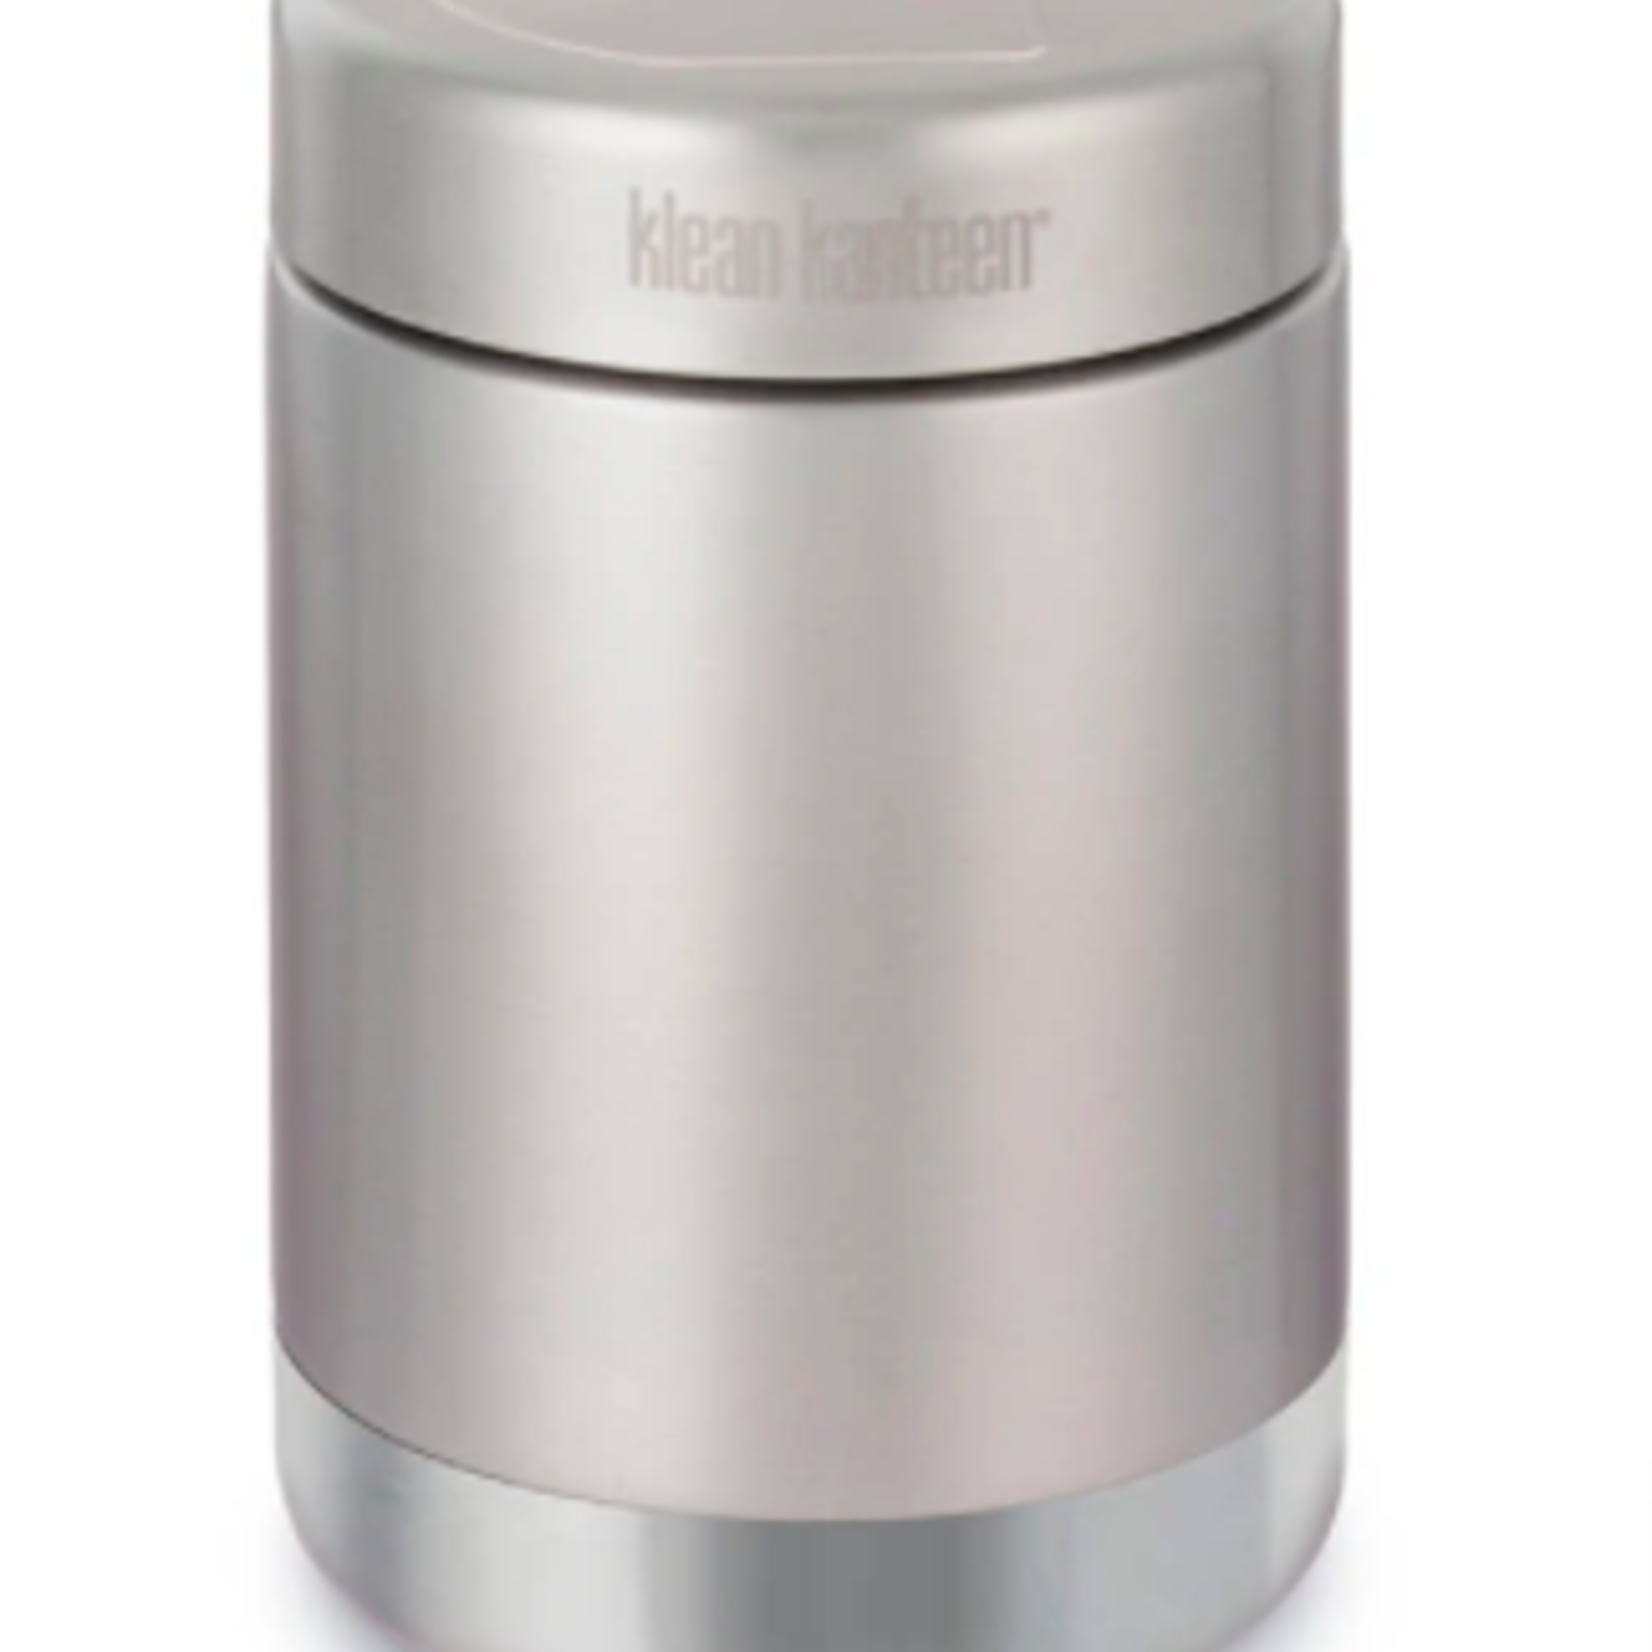 Klean Kanteen Insulated Food Containers